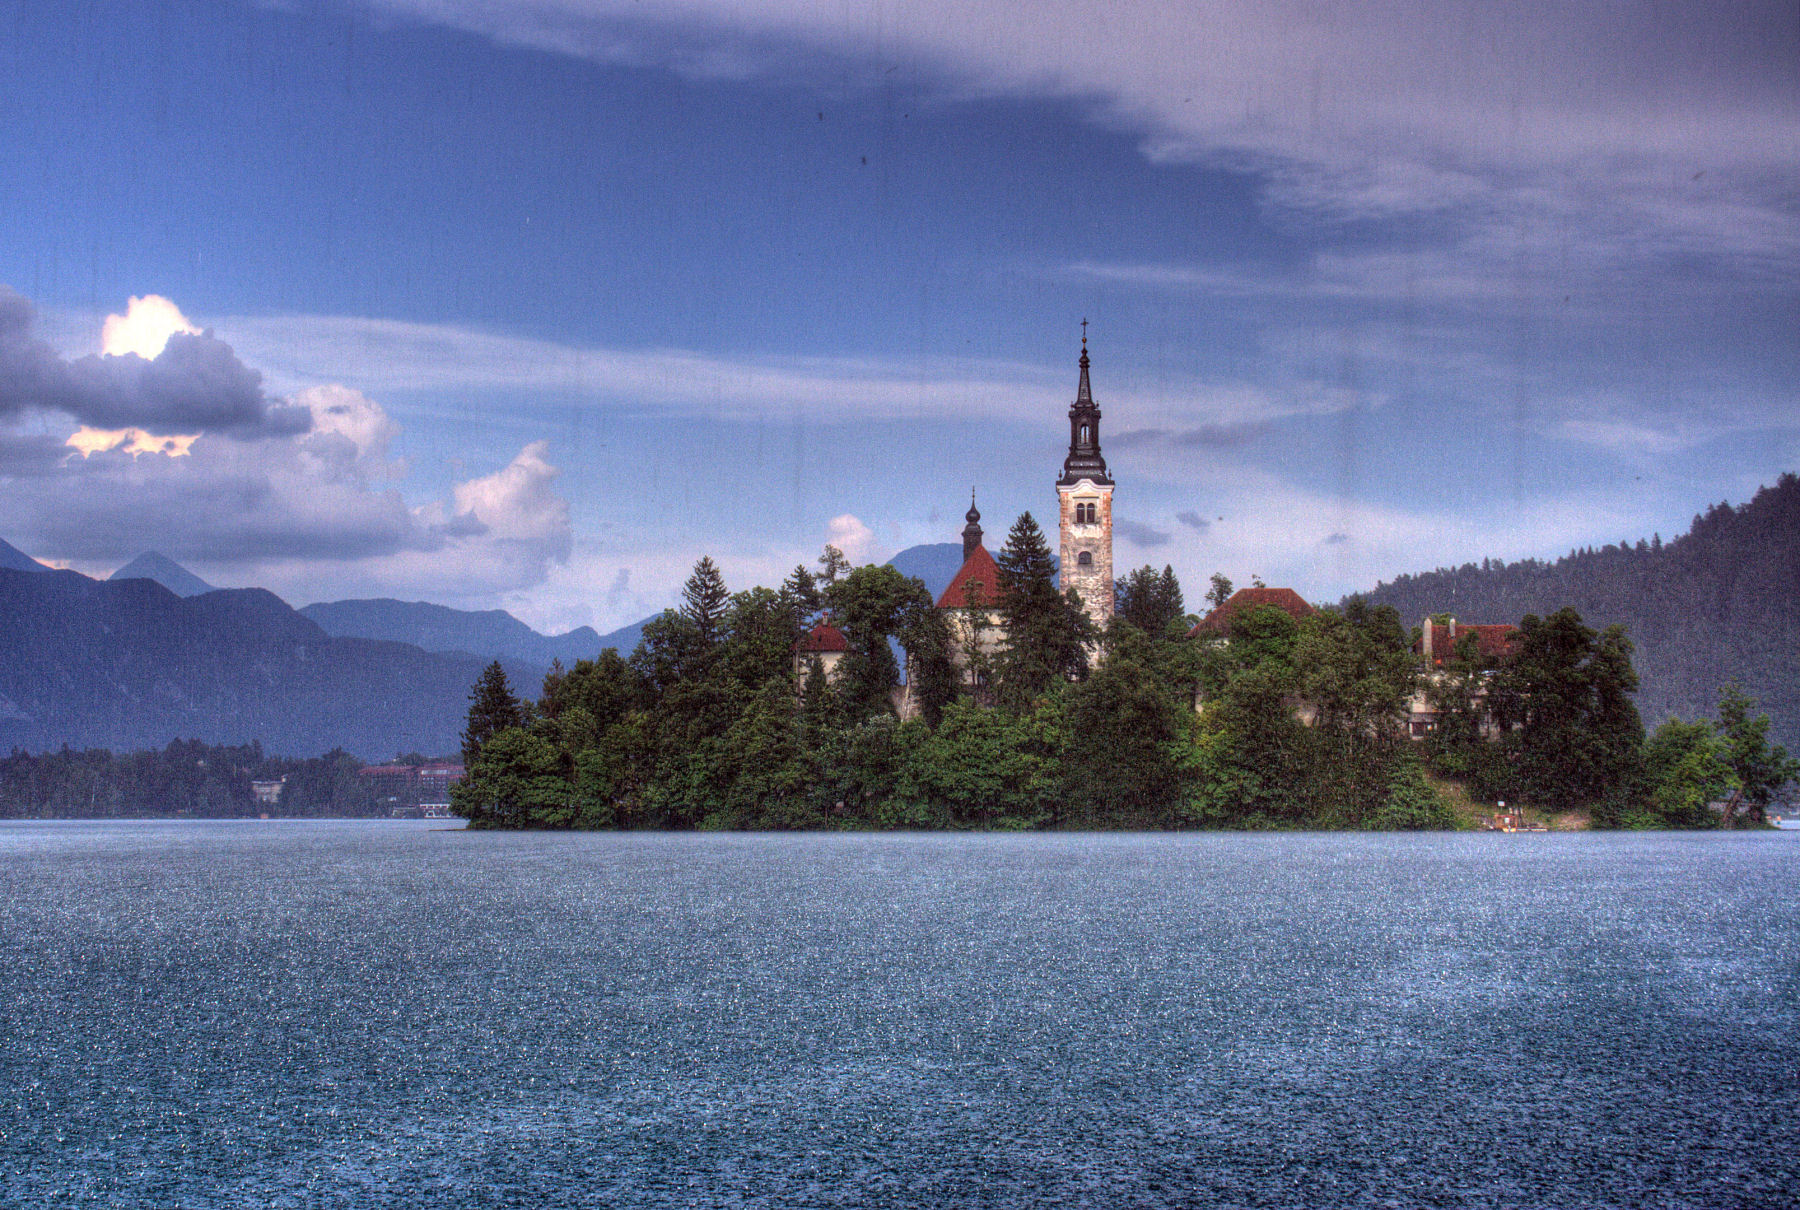 Lake Bled is beautiful even when it rains